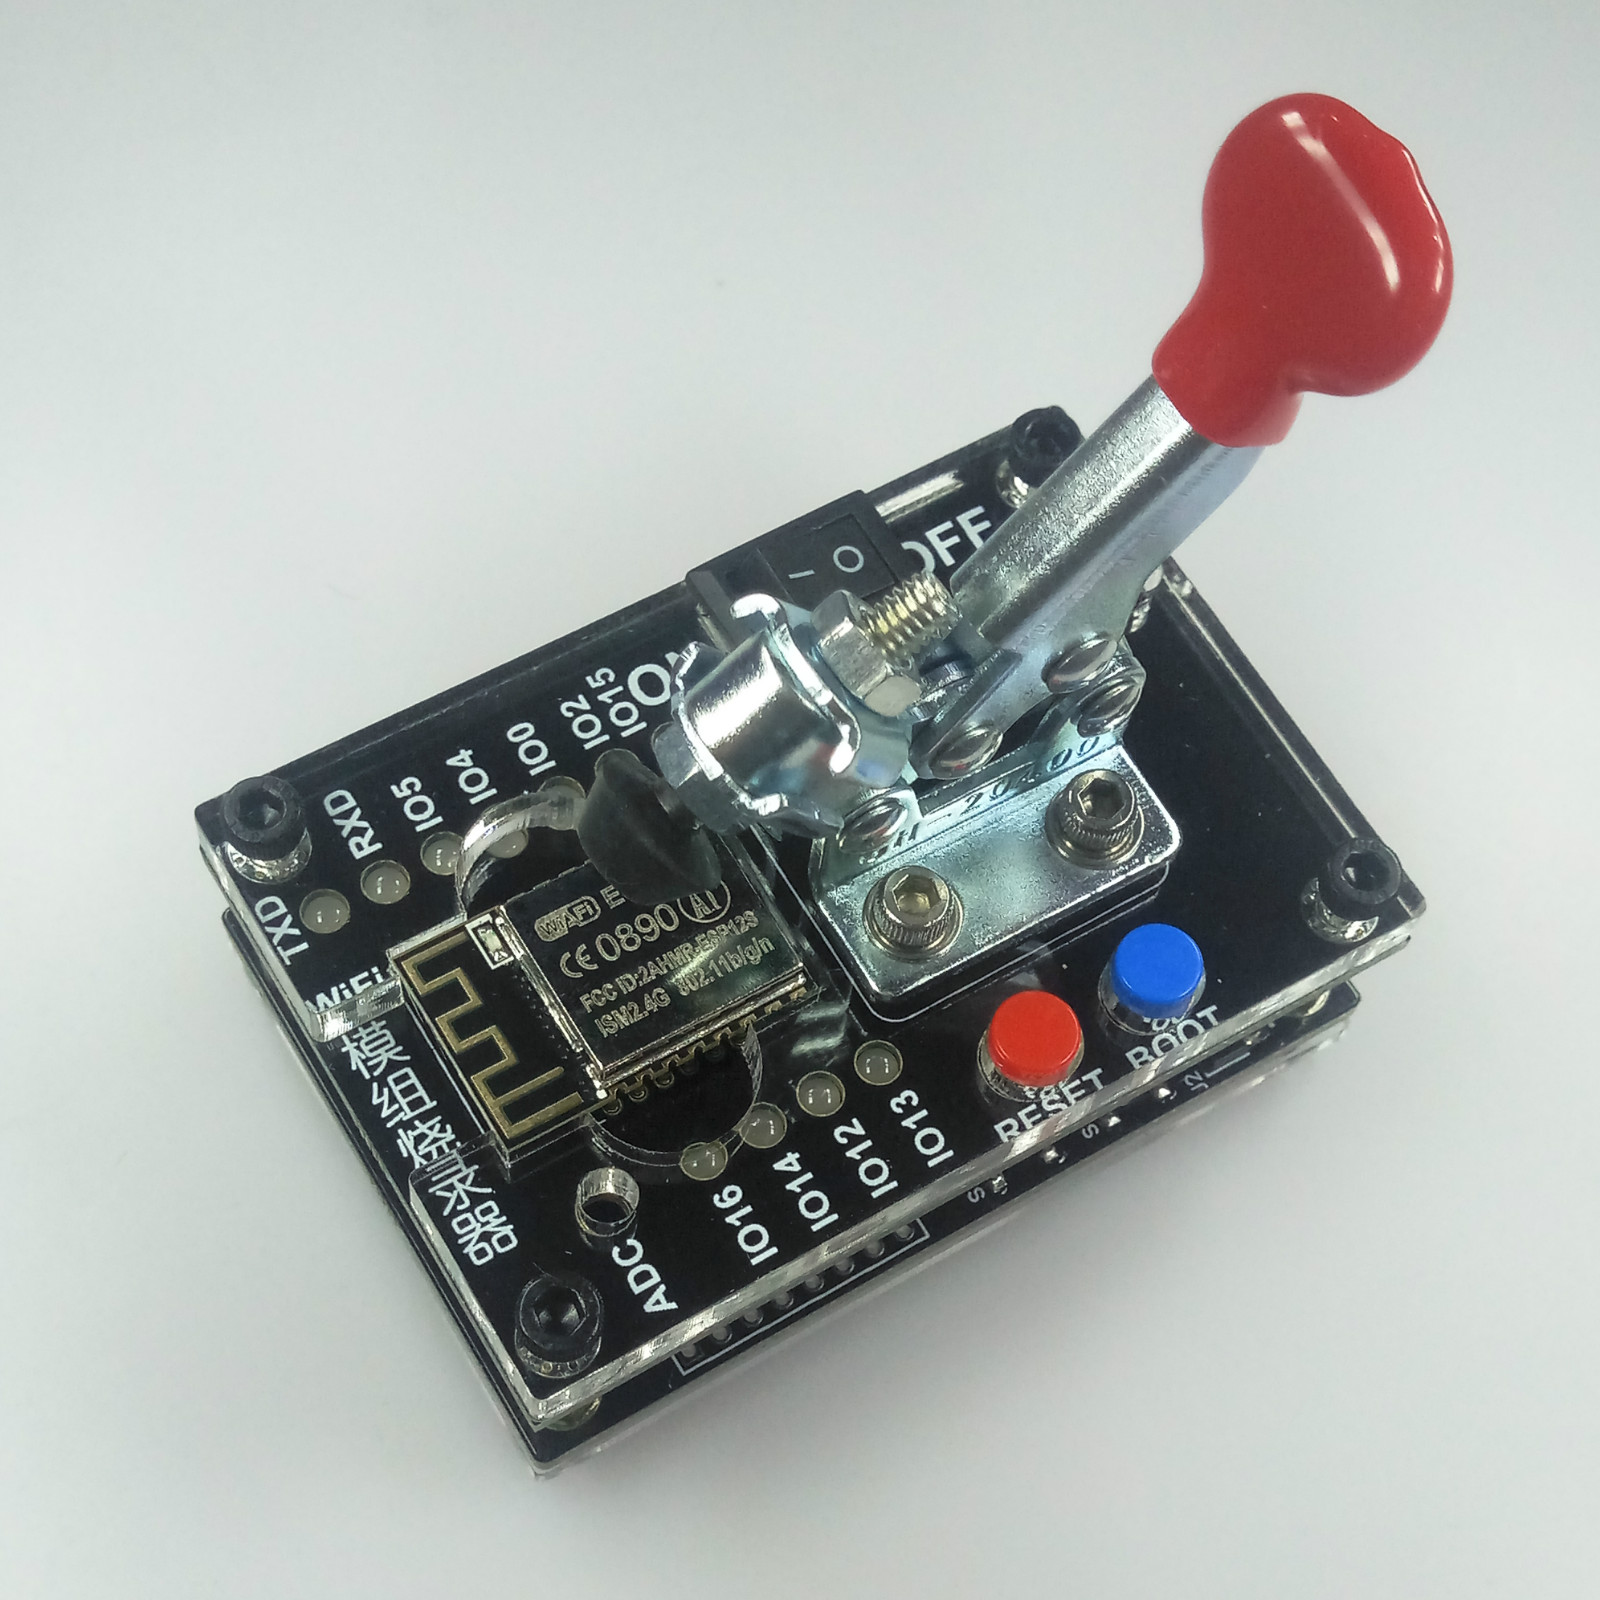 <font><b>ESP8266</b></font> test rack burner, one <font><b>button</b></font> download, support ESP-12S ESP-07S and other 7 modules. image